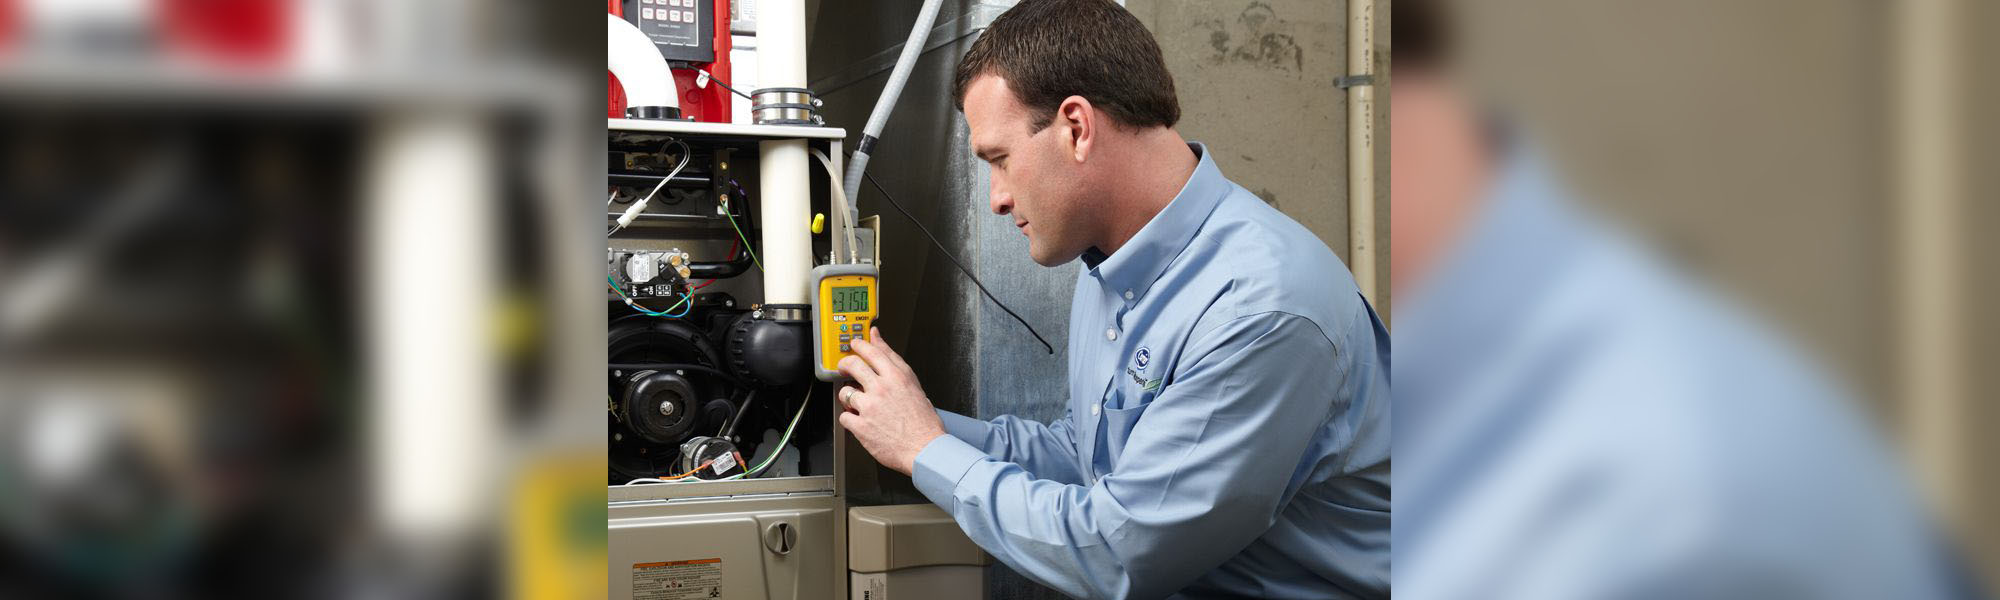 Furnace Tune-up and Maintenance Stockton CA